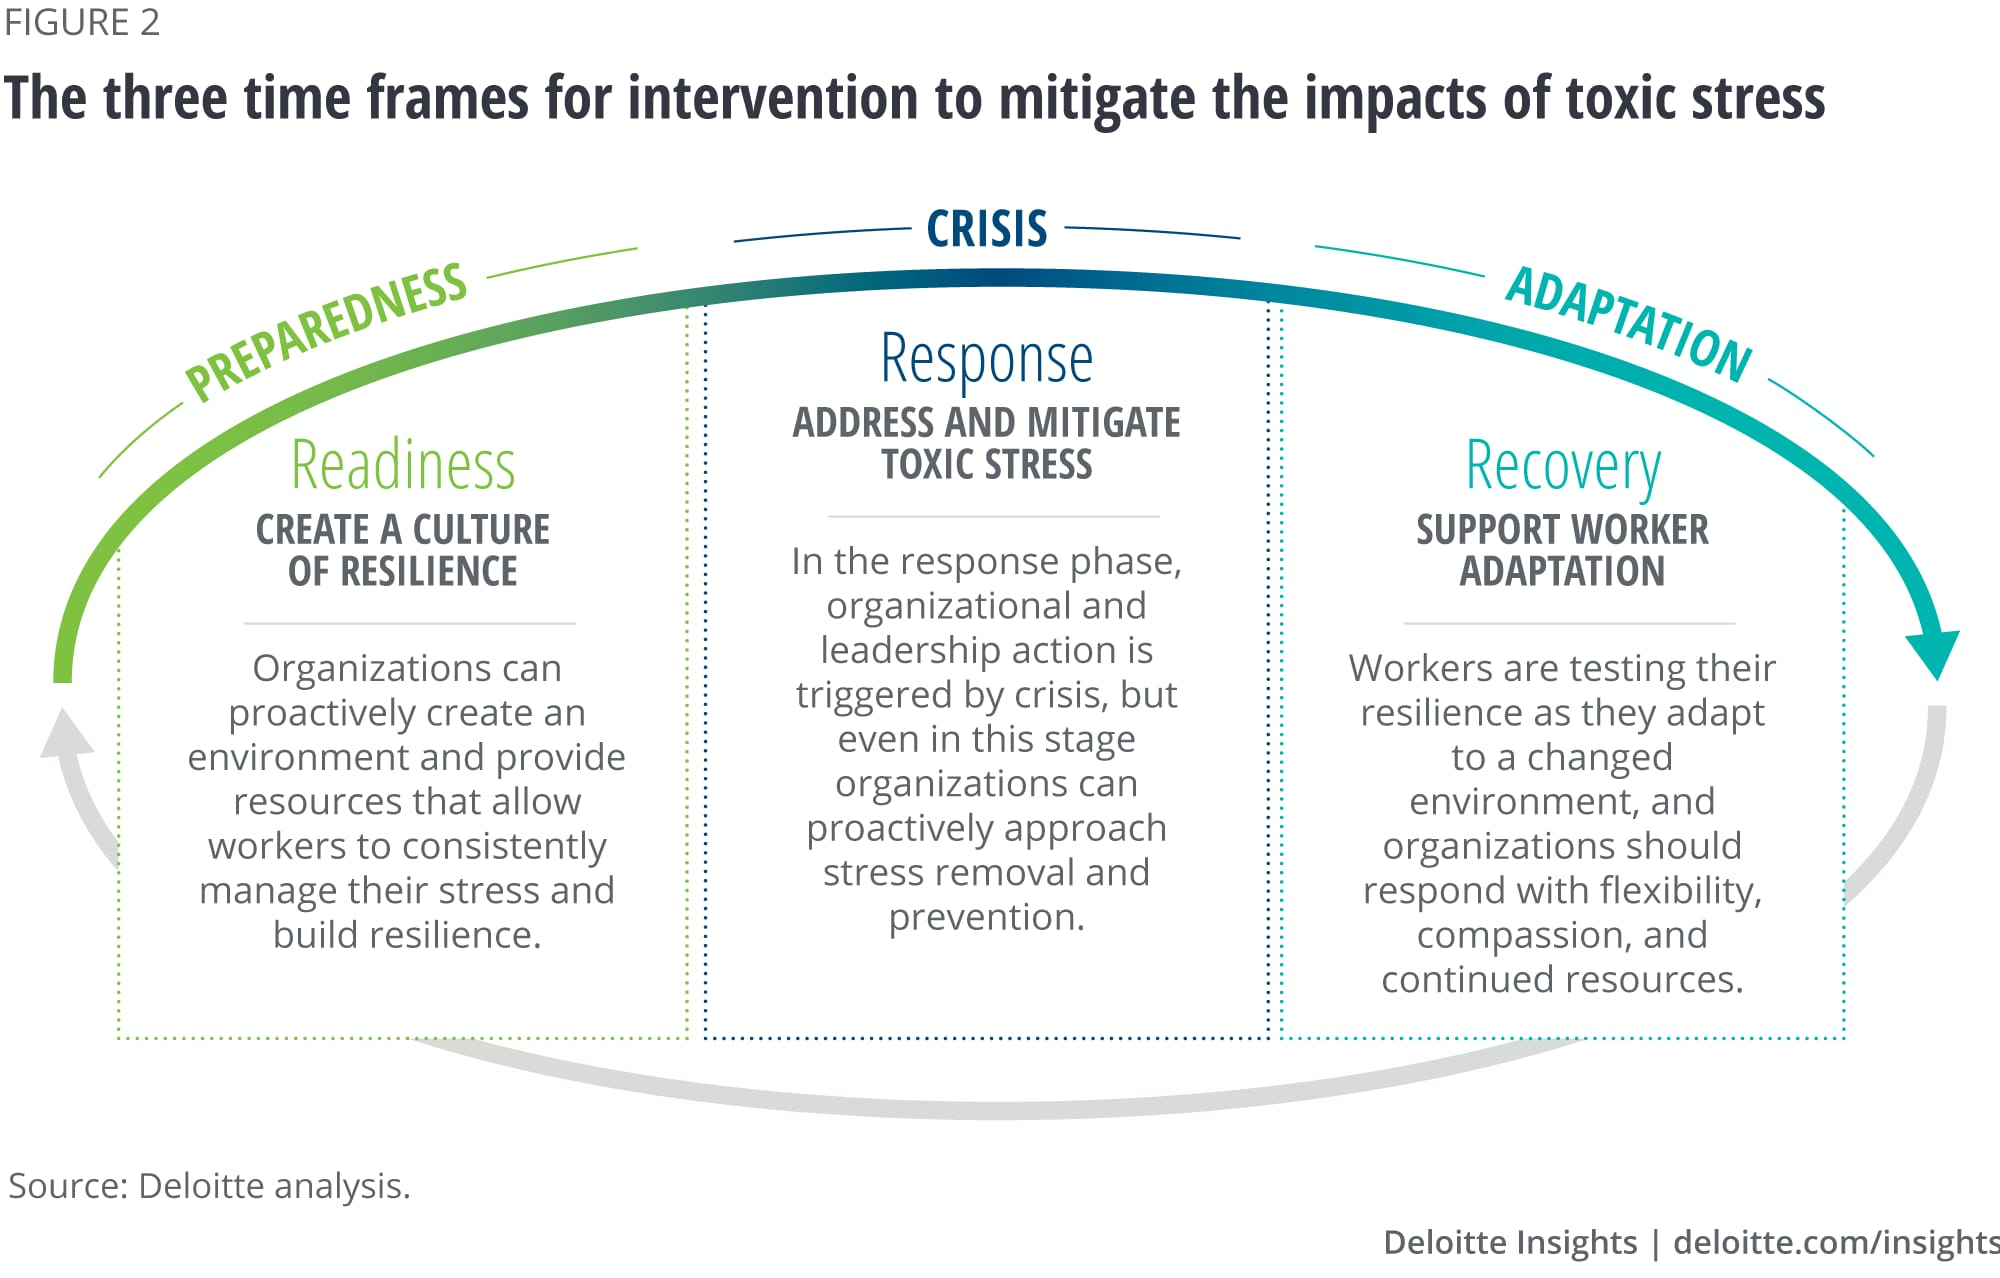 The three time frames for intervention to mitigate the impacts of toxic stress